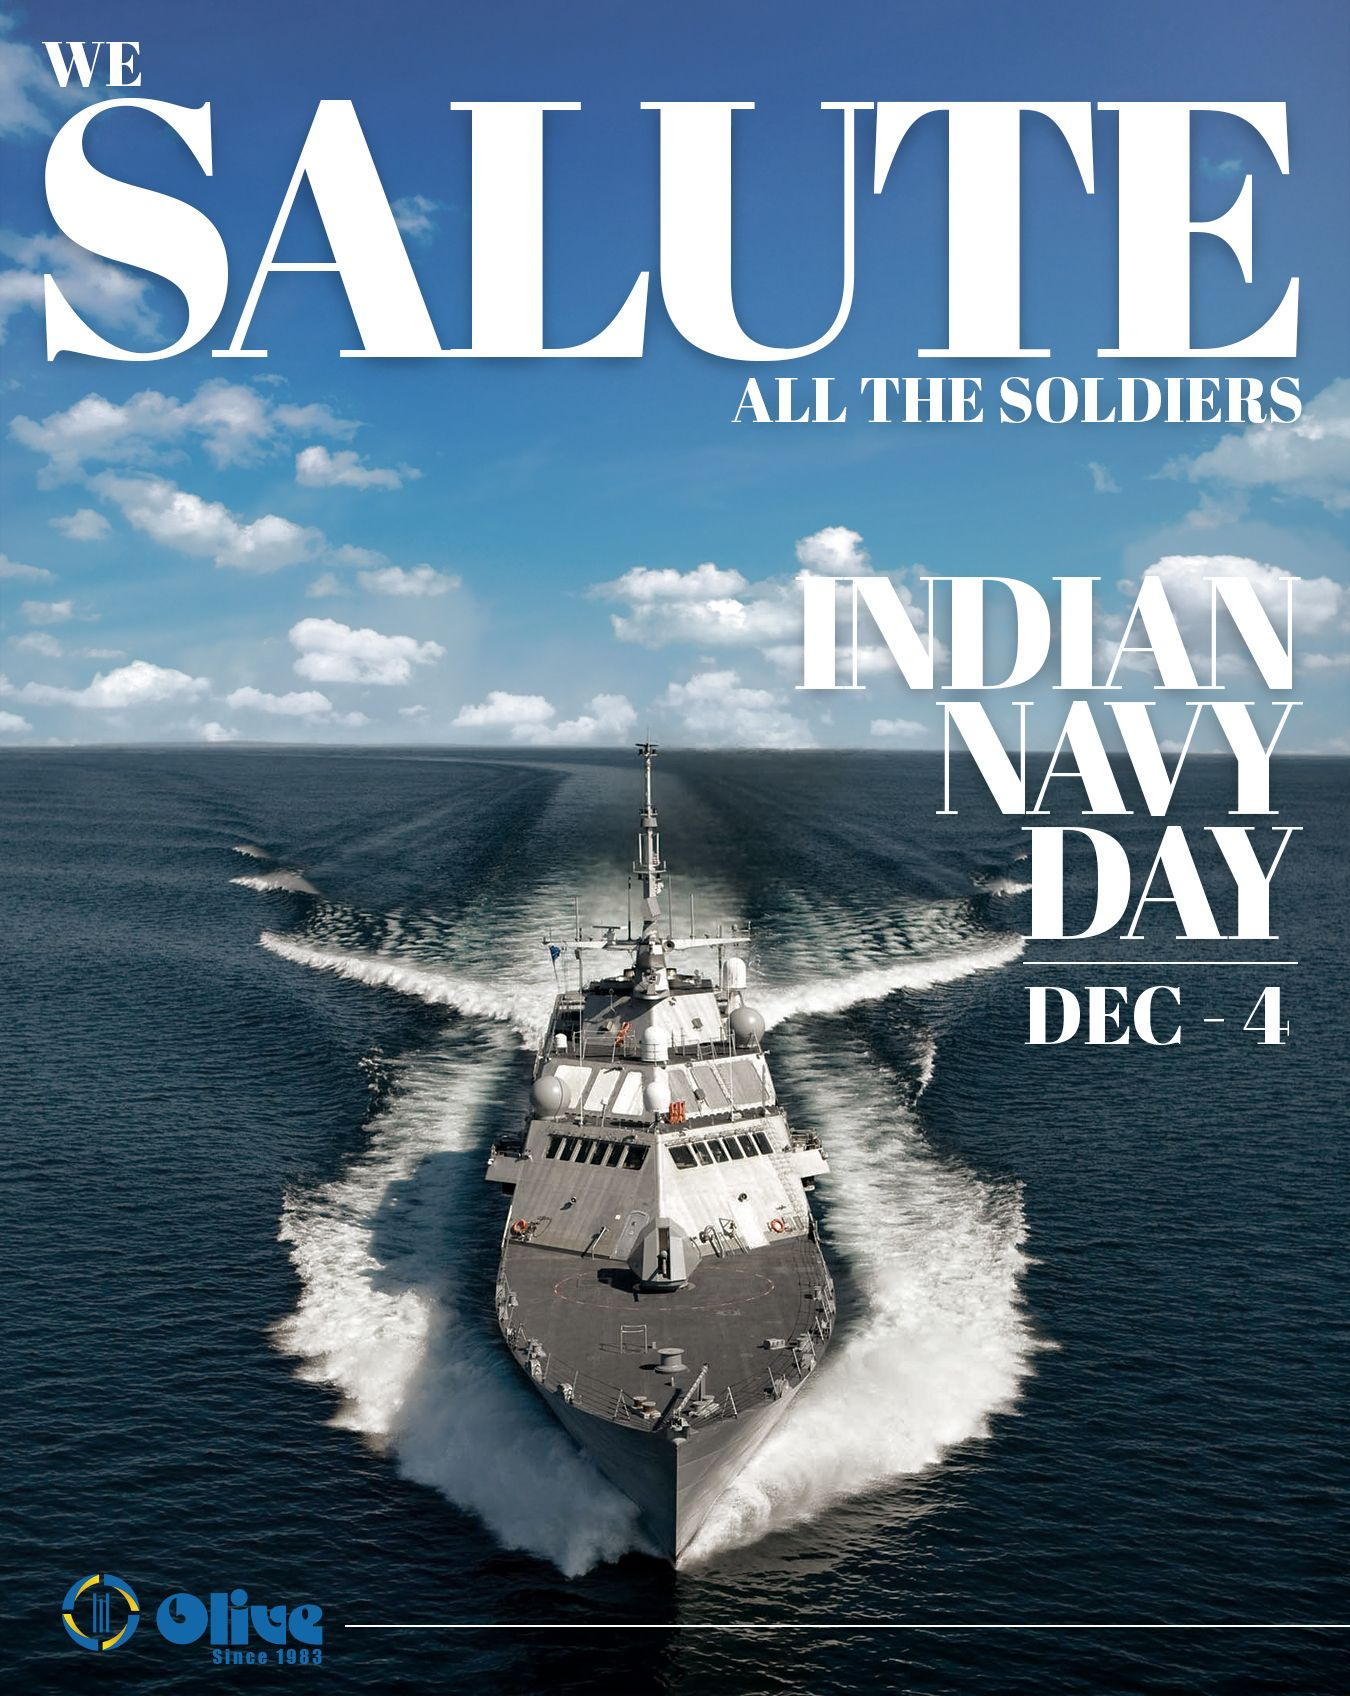 For Your Bravery Hard Work And Dedication To Our Country We Thank You Olivebuilders Navyday Indiannavy Proudtobea Indian Navy Day Navy Day Indian Navy